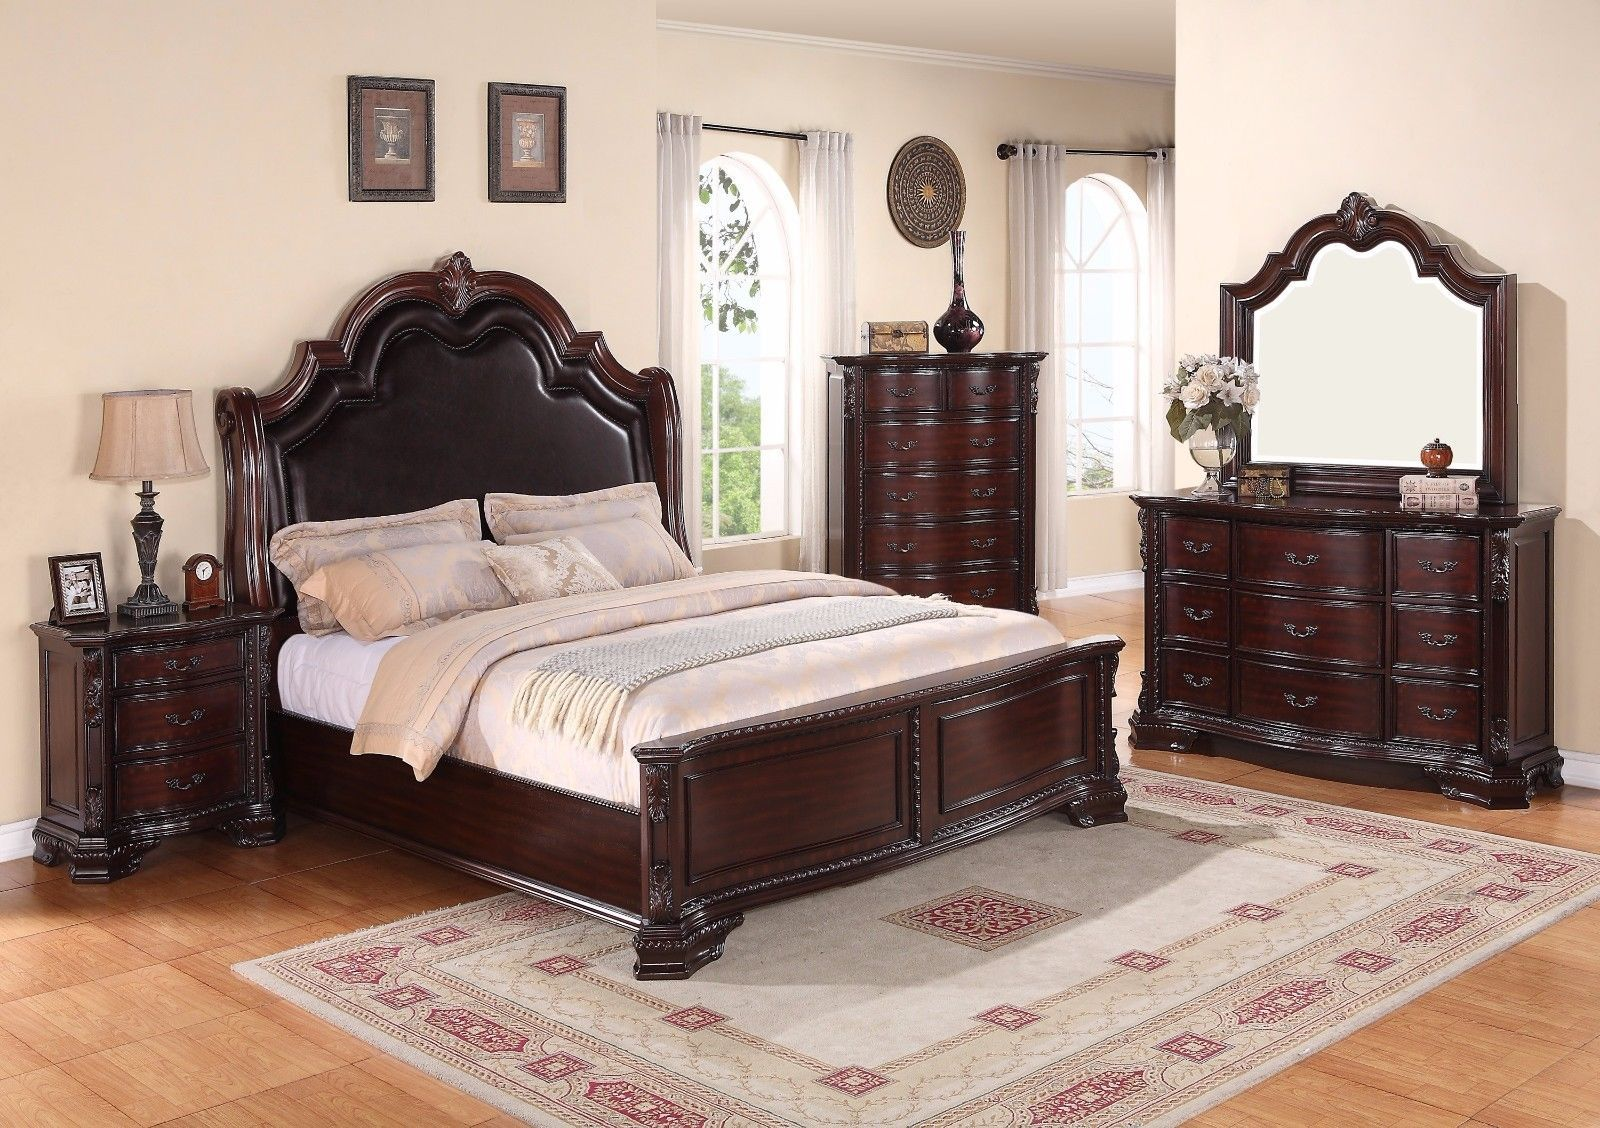 Crown Mark RB1100 Sheffield king Size Bedroom Set 5pc. Traditional Style